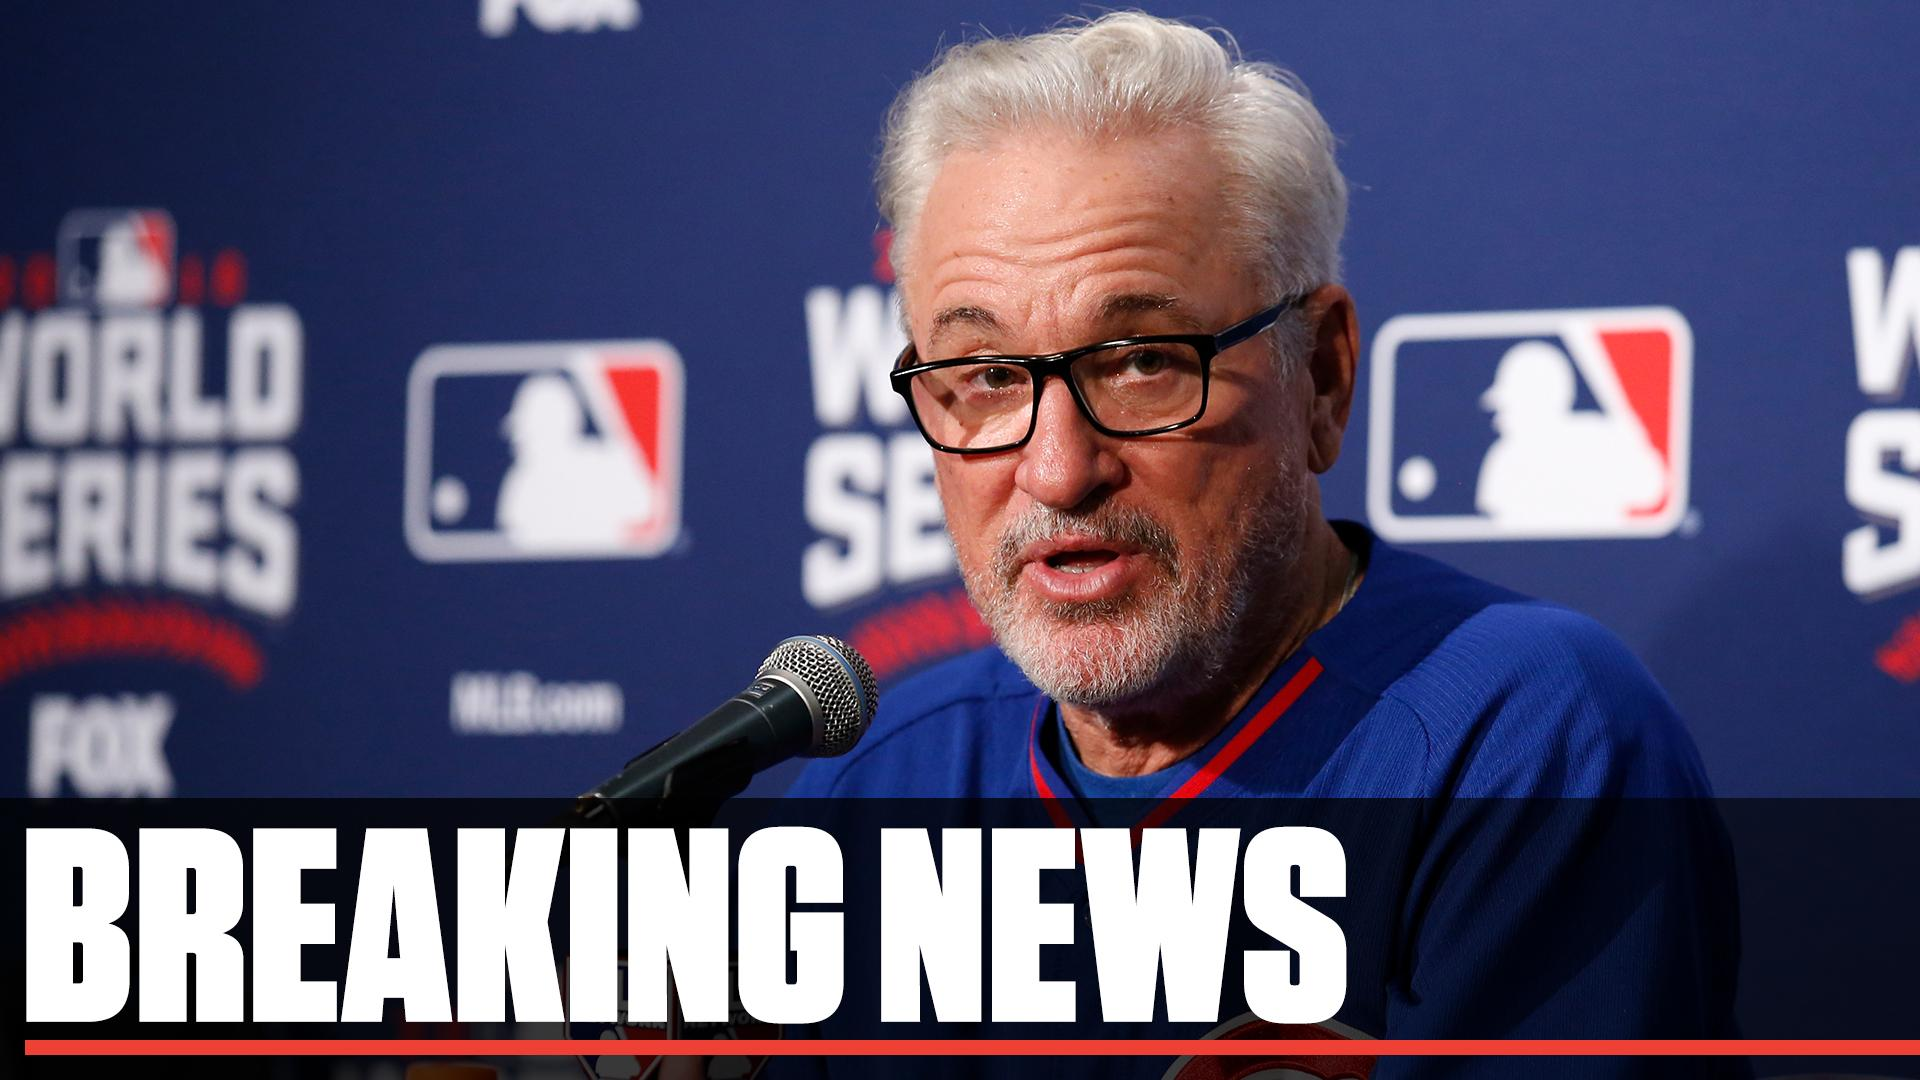 Breaking: The Los Angeles Angels have hired Joe Maddon as their next manager, the team announced Wednesday.  Maddon is expected to receive a three-year contract worth $12 to $15 million, a source told Jesse Rogers (@ESPNChiCubs). https://t.co/MIi5Grcx1f